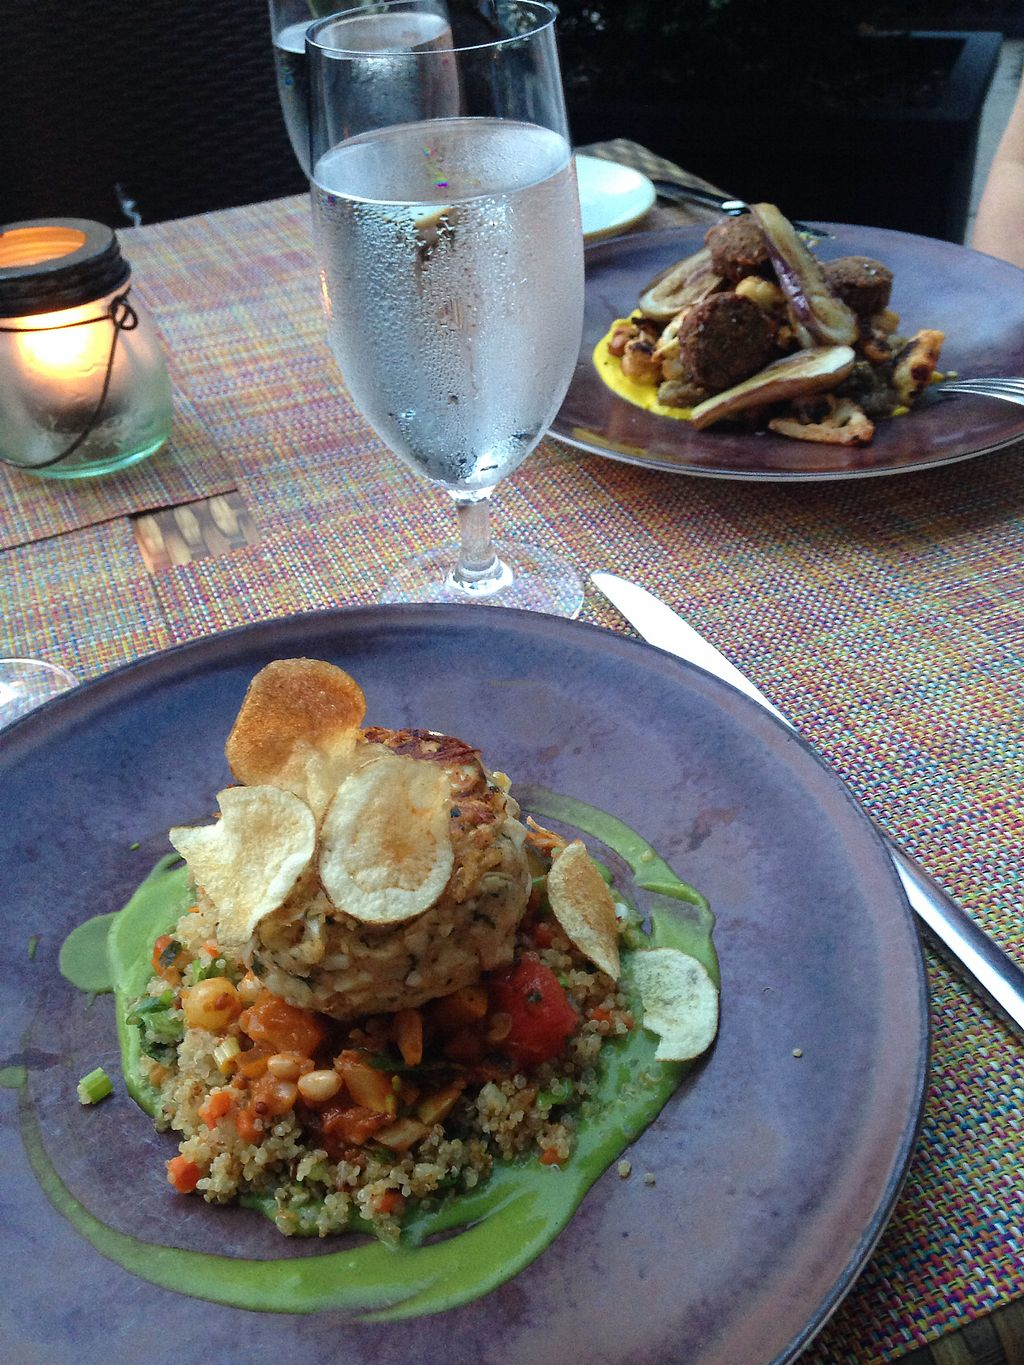 "Photo of Equinox Restaurant  by <a href=""/members/profile/LDR"">LDR</a> <br/>Vegan hearts of palm ""crab cake"" in foreground, eggplant falafel in background <br/> August 6, 2017  - <a href='/contact/abuse/image/46752/289815'>Report</a>"